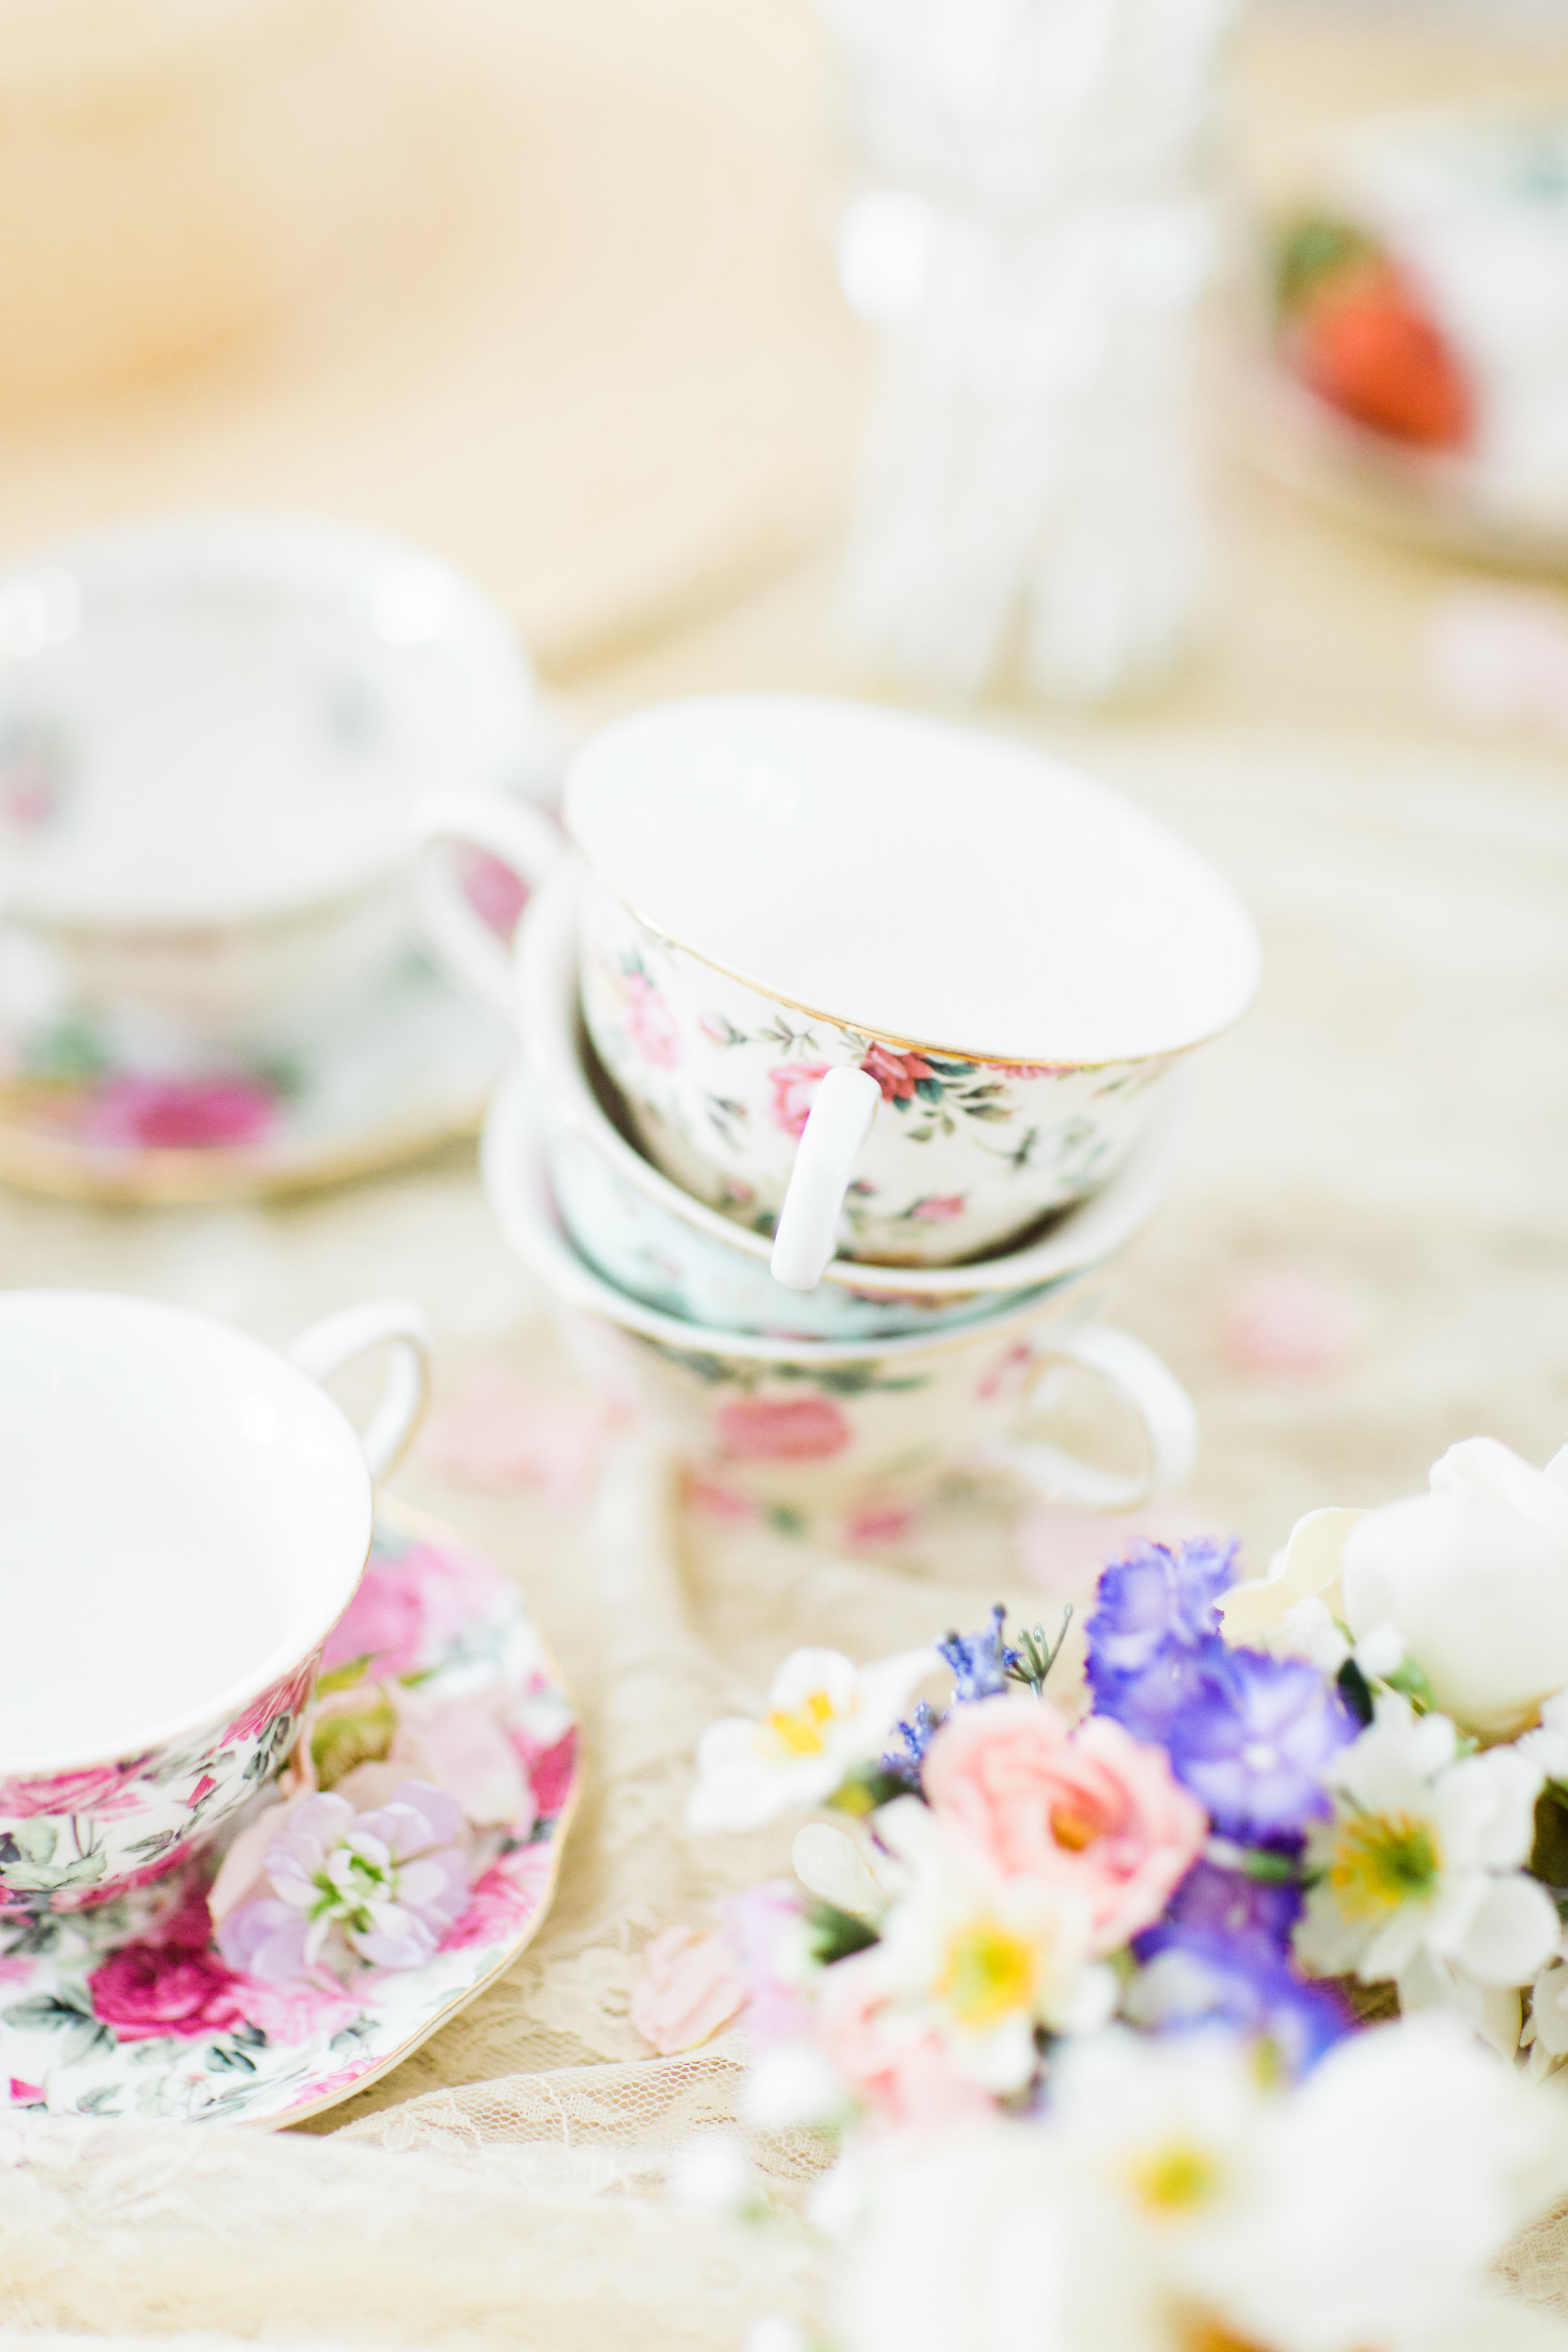 Lifestyle blogger Lexi of Glitter, Inc. shares how to throw a tea party baby shower in 6 easy steps; plus a DIY diaper